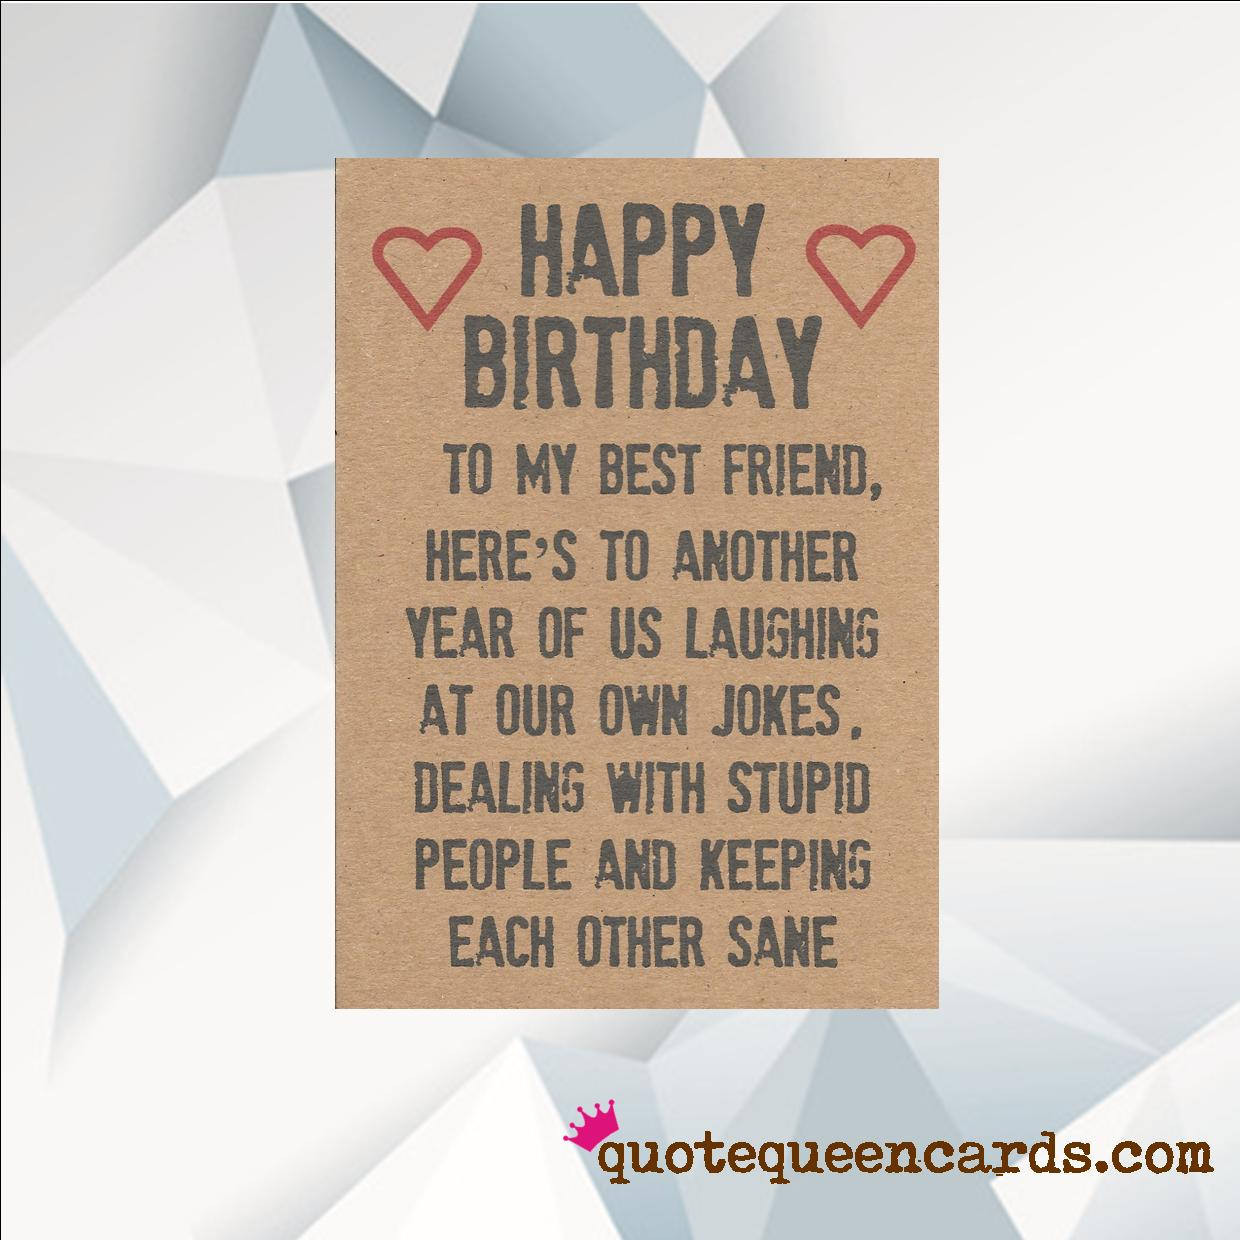 Best ideas about Happy Birthday Card For Best Friend . Save or Pin Happy Birthday BEST FRIEND Funny Birthday Card For Friend Now.